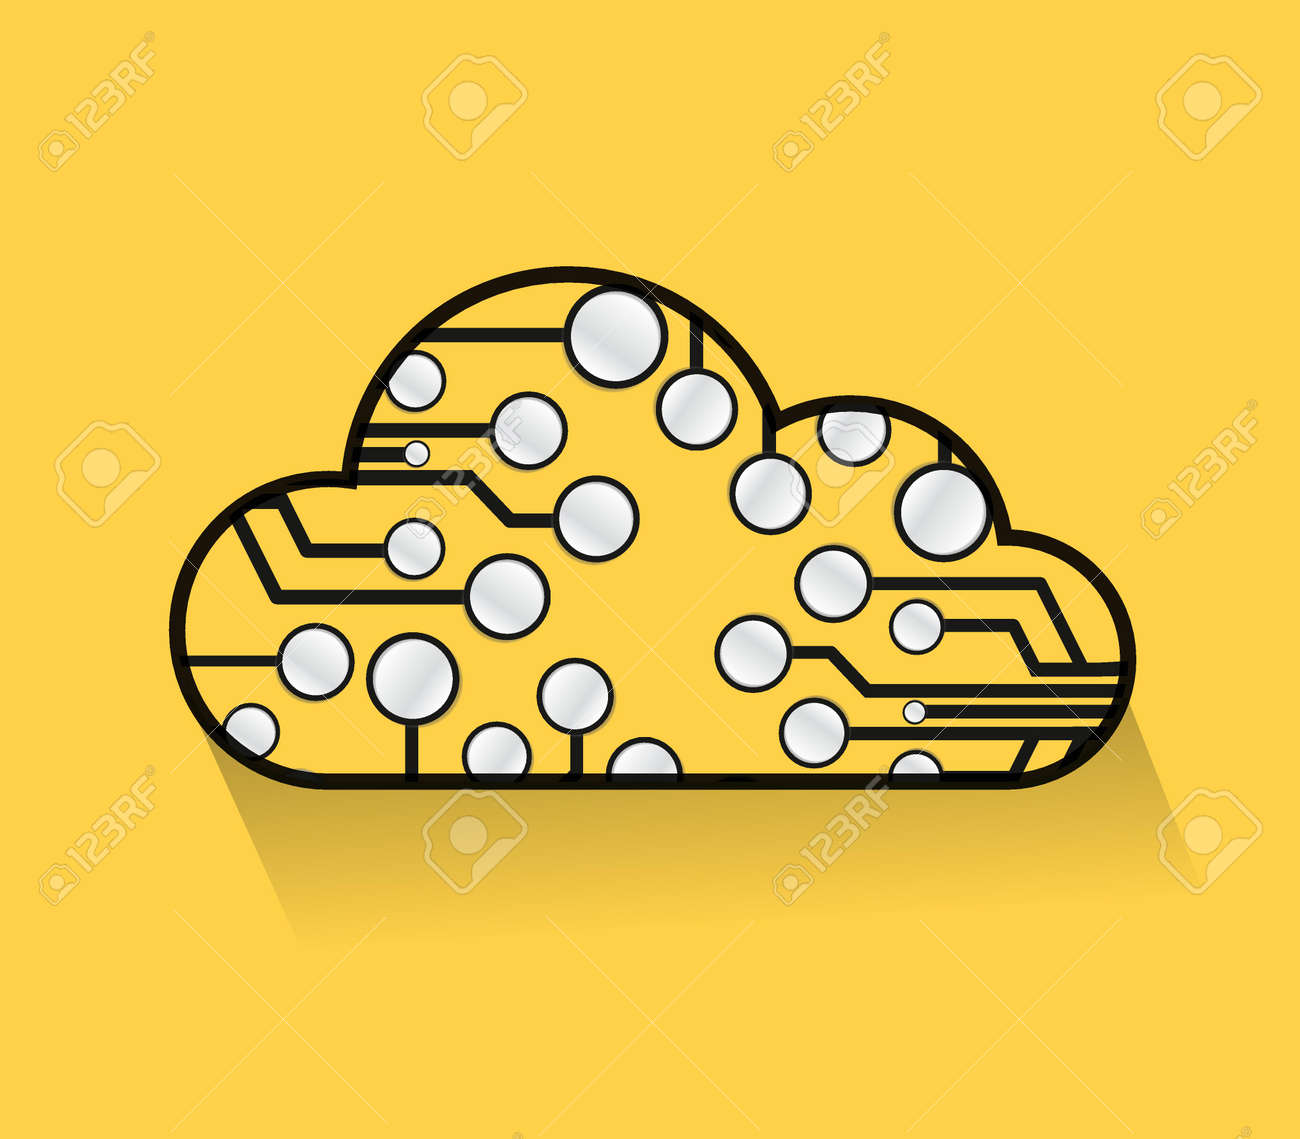 cloud computing circuits illustrations over a yellow background